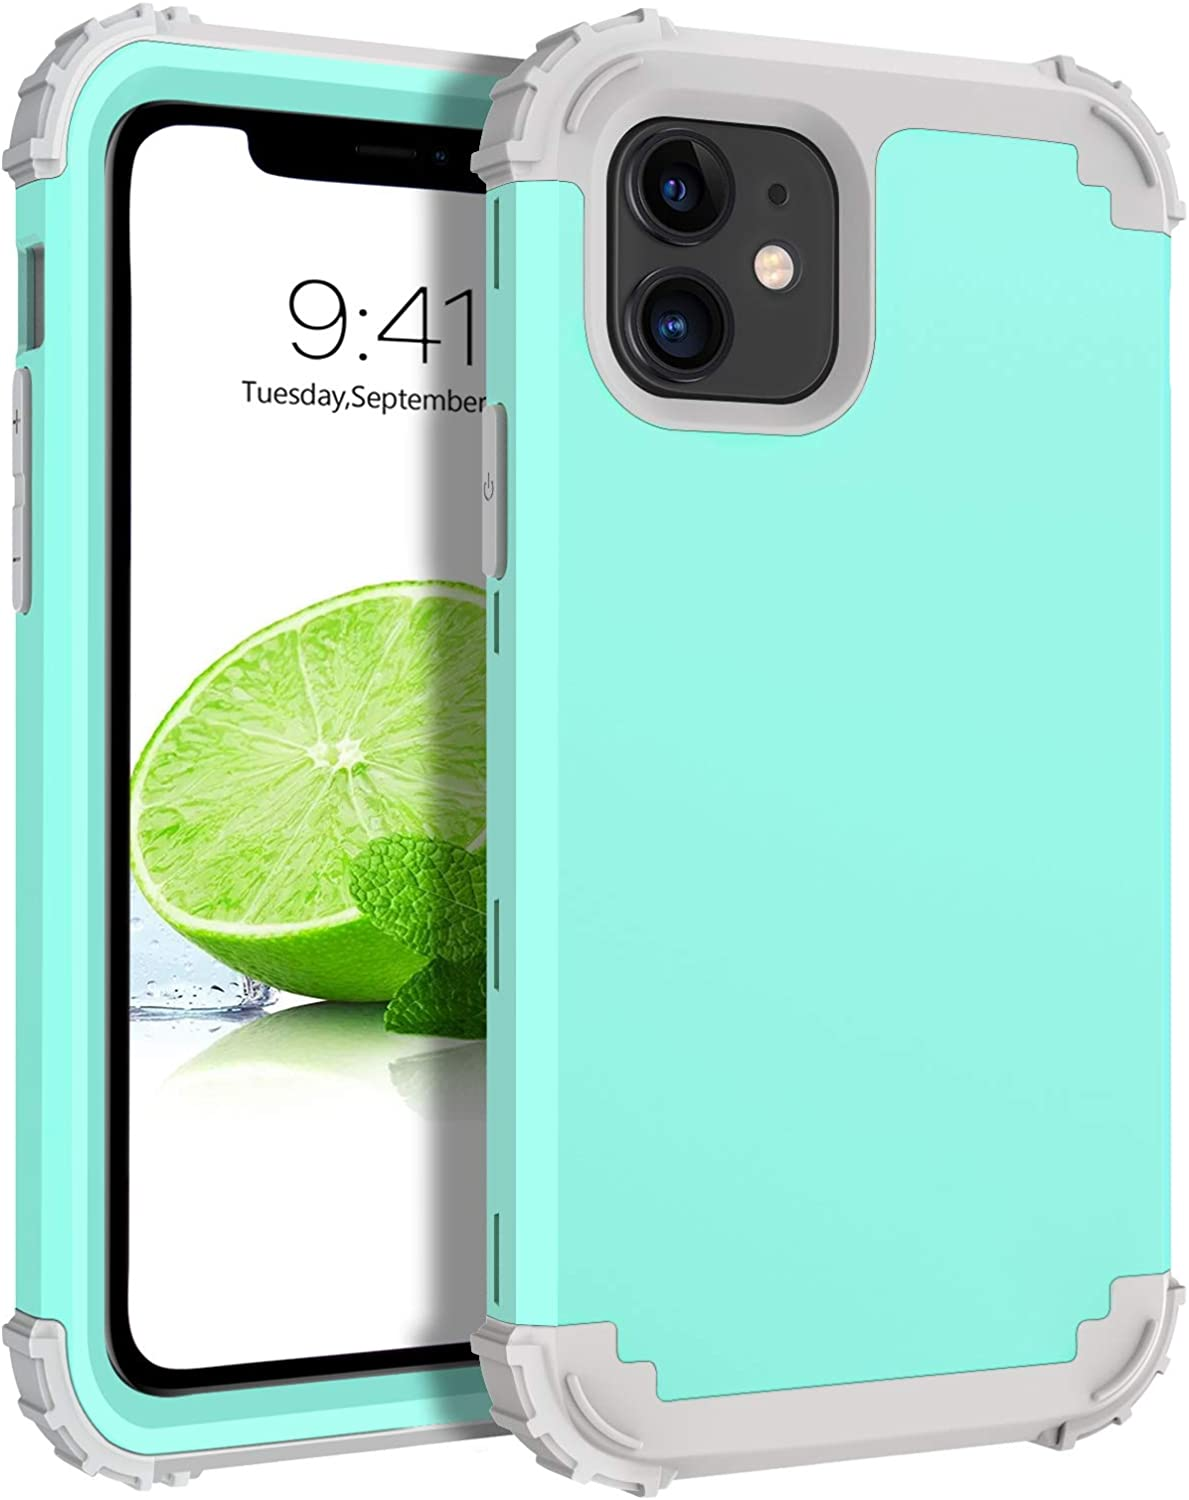 """BENTOBEN iPhone 11 Case, iPhone 11 Phone Case, 3 in 1 Heavy Duty Rugged Hybrid Soft Silicone Bumper Hard PC Cover Impact Resistant Shockproof Protective Case Cover for Apple iPhone 11 6.1"""", Turquoise"""